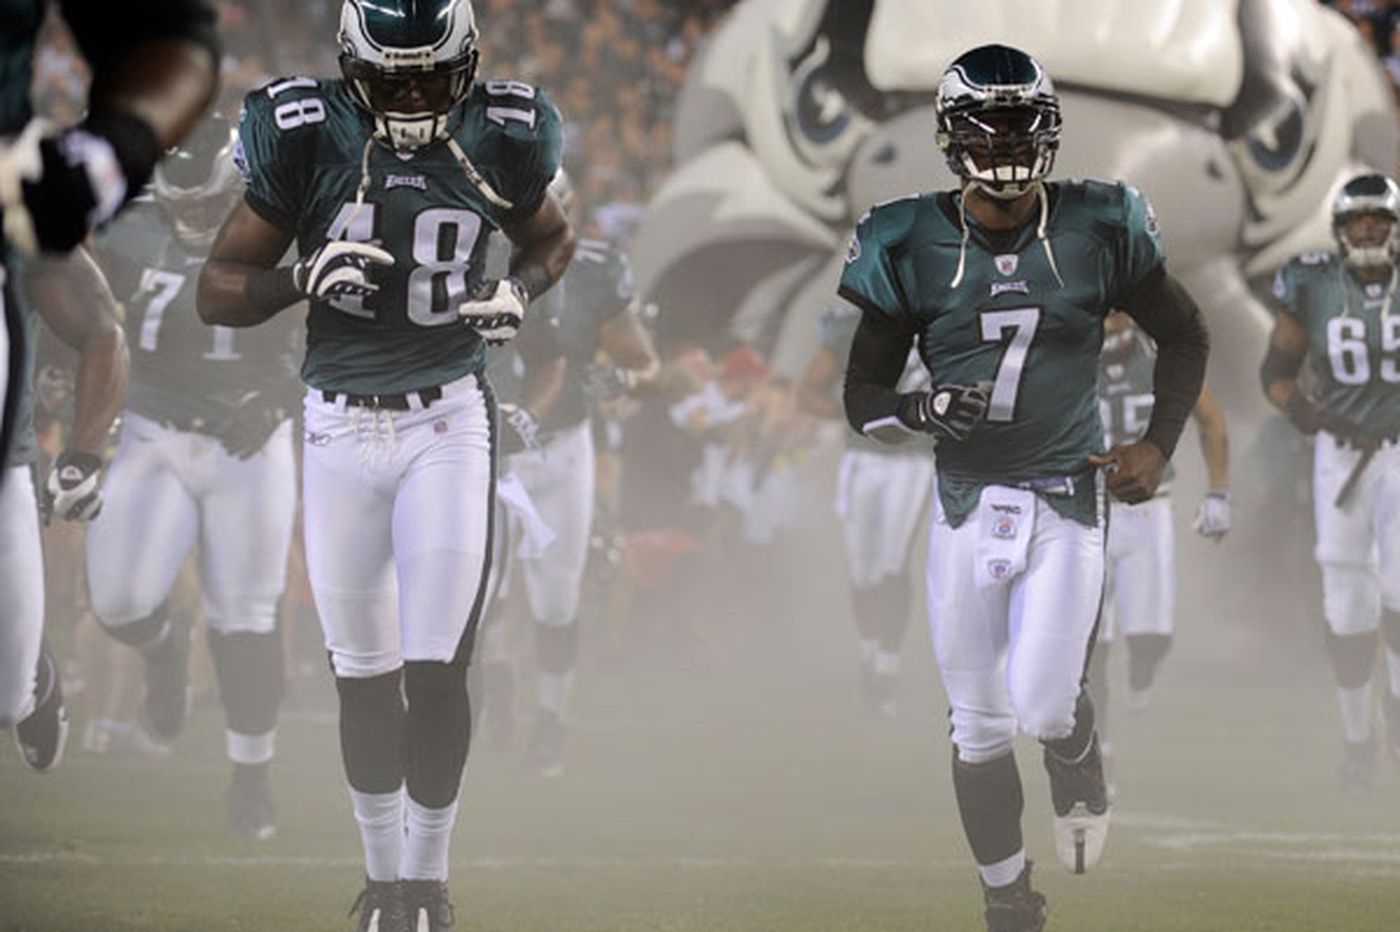 Eagles flying high without Vick and Maclin